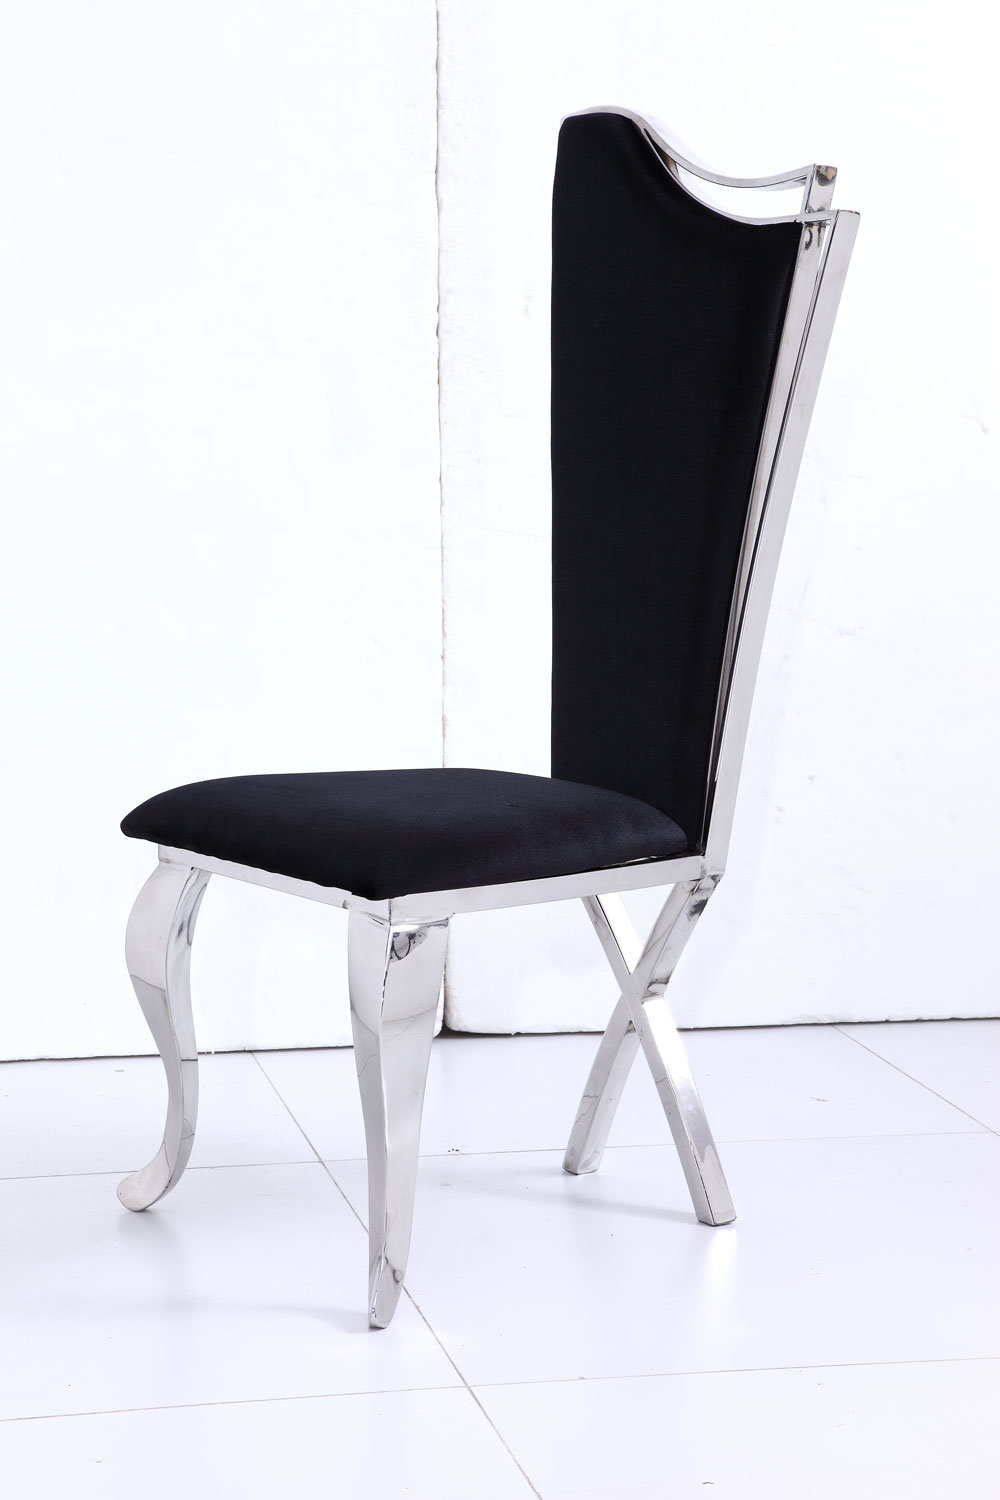 Hot Selling New Style Stainless Steel Frame Dining Chair